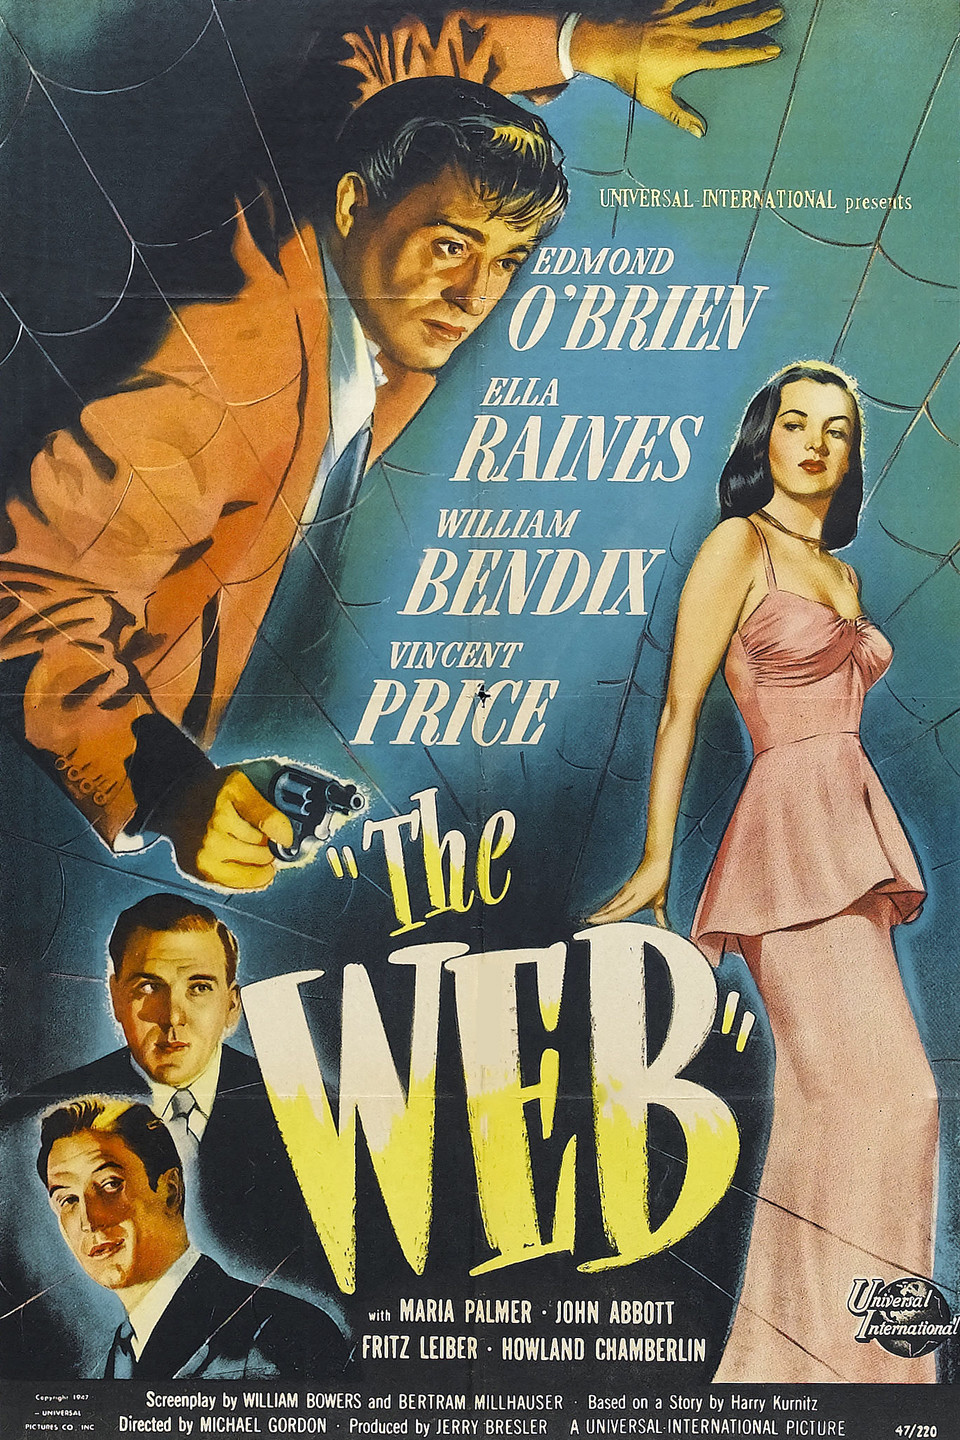 The Web (1947)